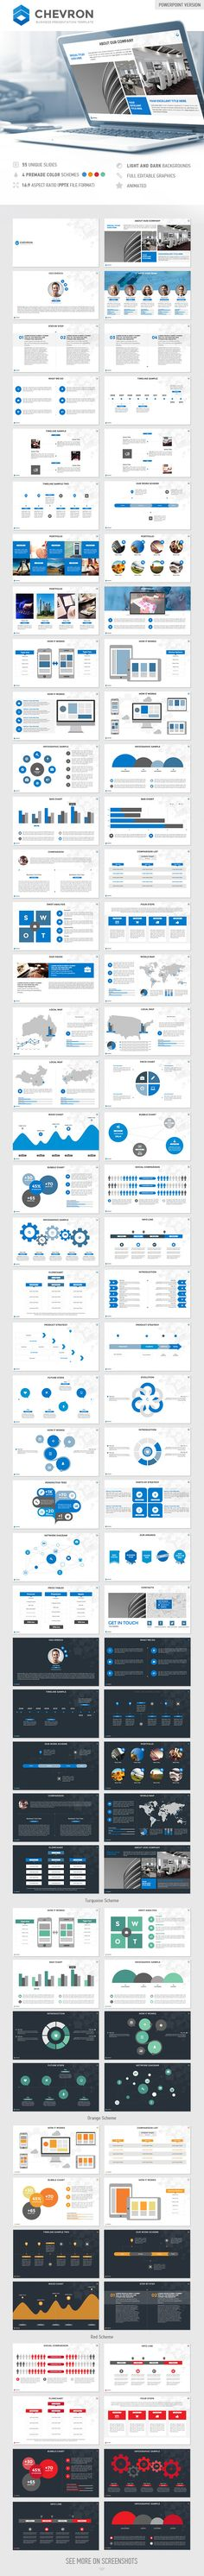 Chevron PowerPoint Presentation Template (Powerpoint Templates) Image Preview